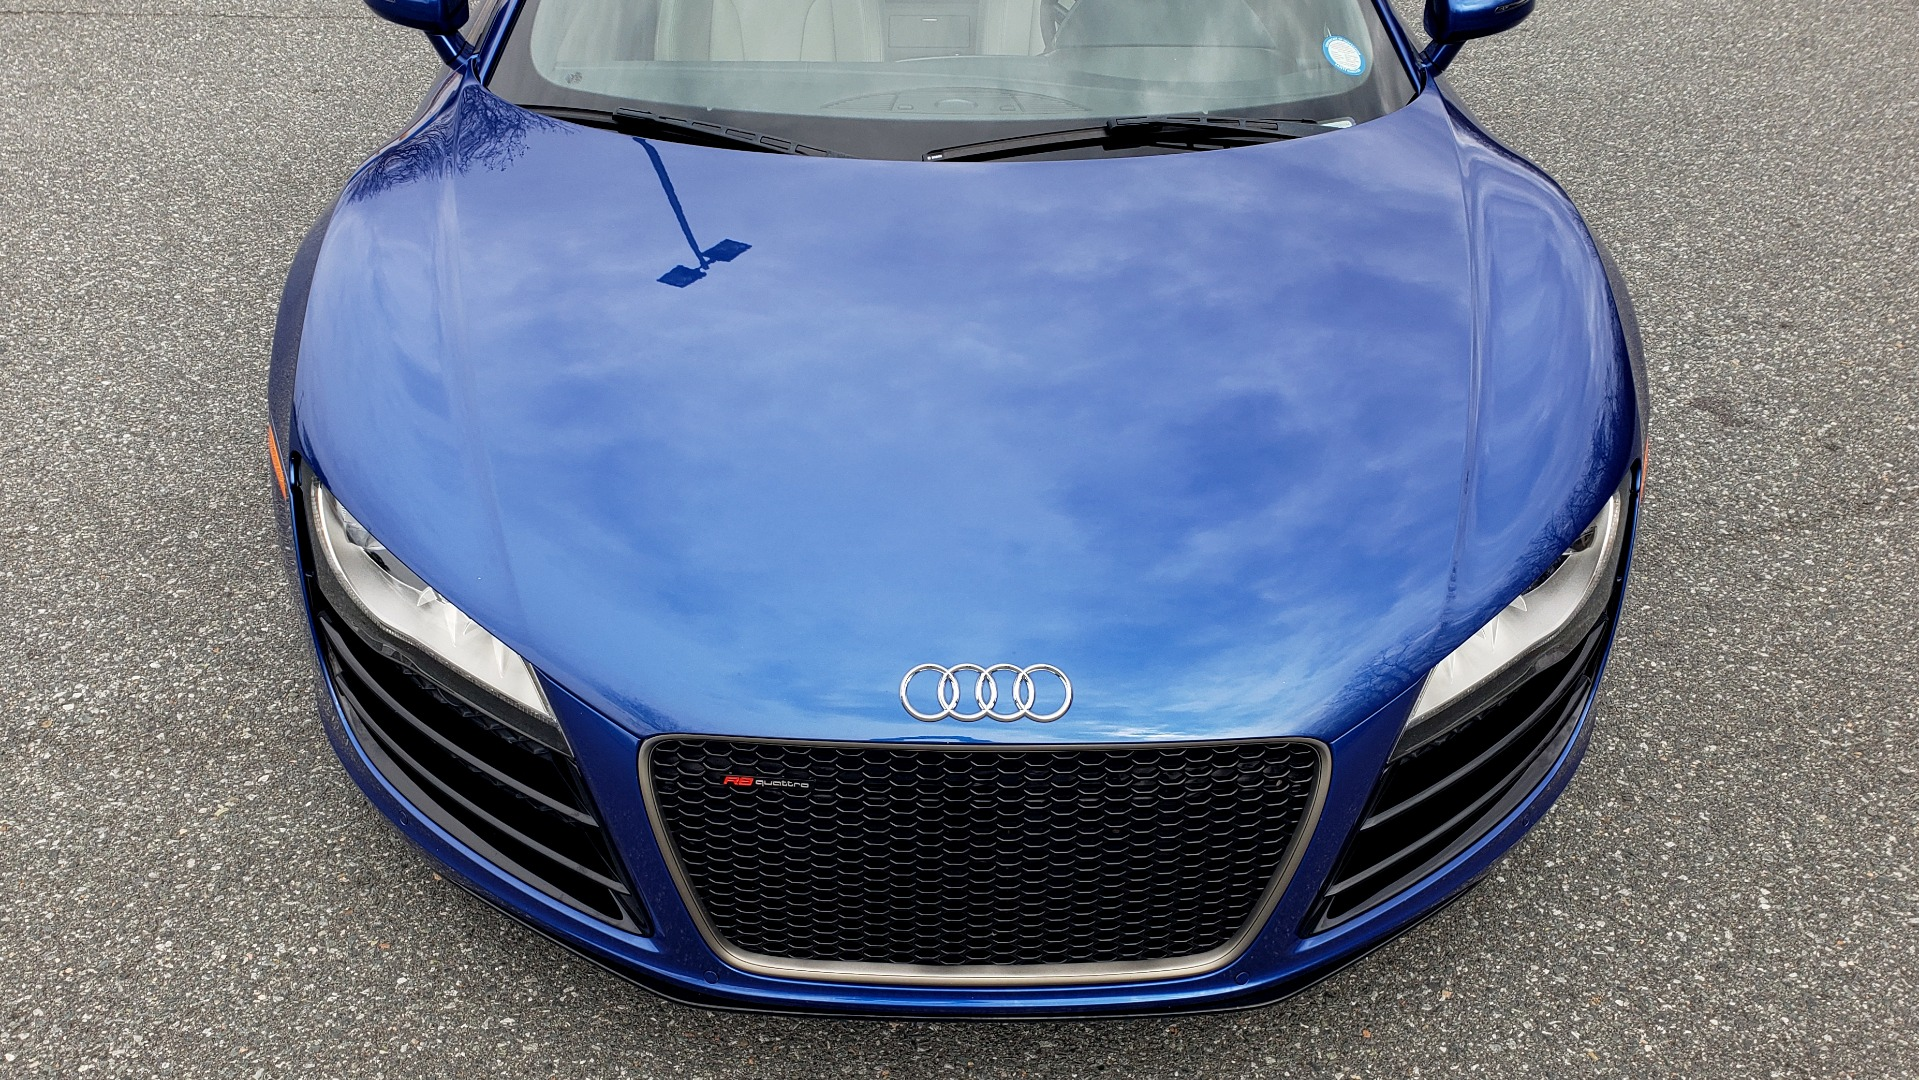 Used 2010 Audi R8 5.2L V10 / AWD / COUPE / NAV / 6-SPD AUTO / CUSTOM WHEELS for sale Sold at Formula Imports in Charlotte NC 28227 18